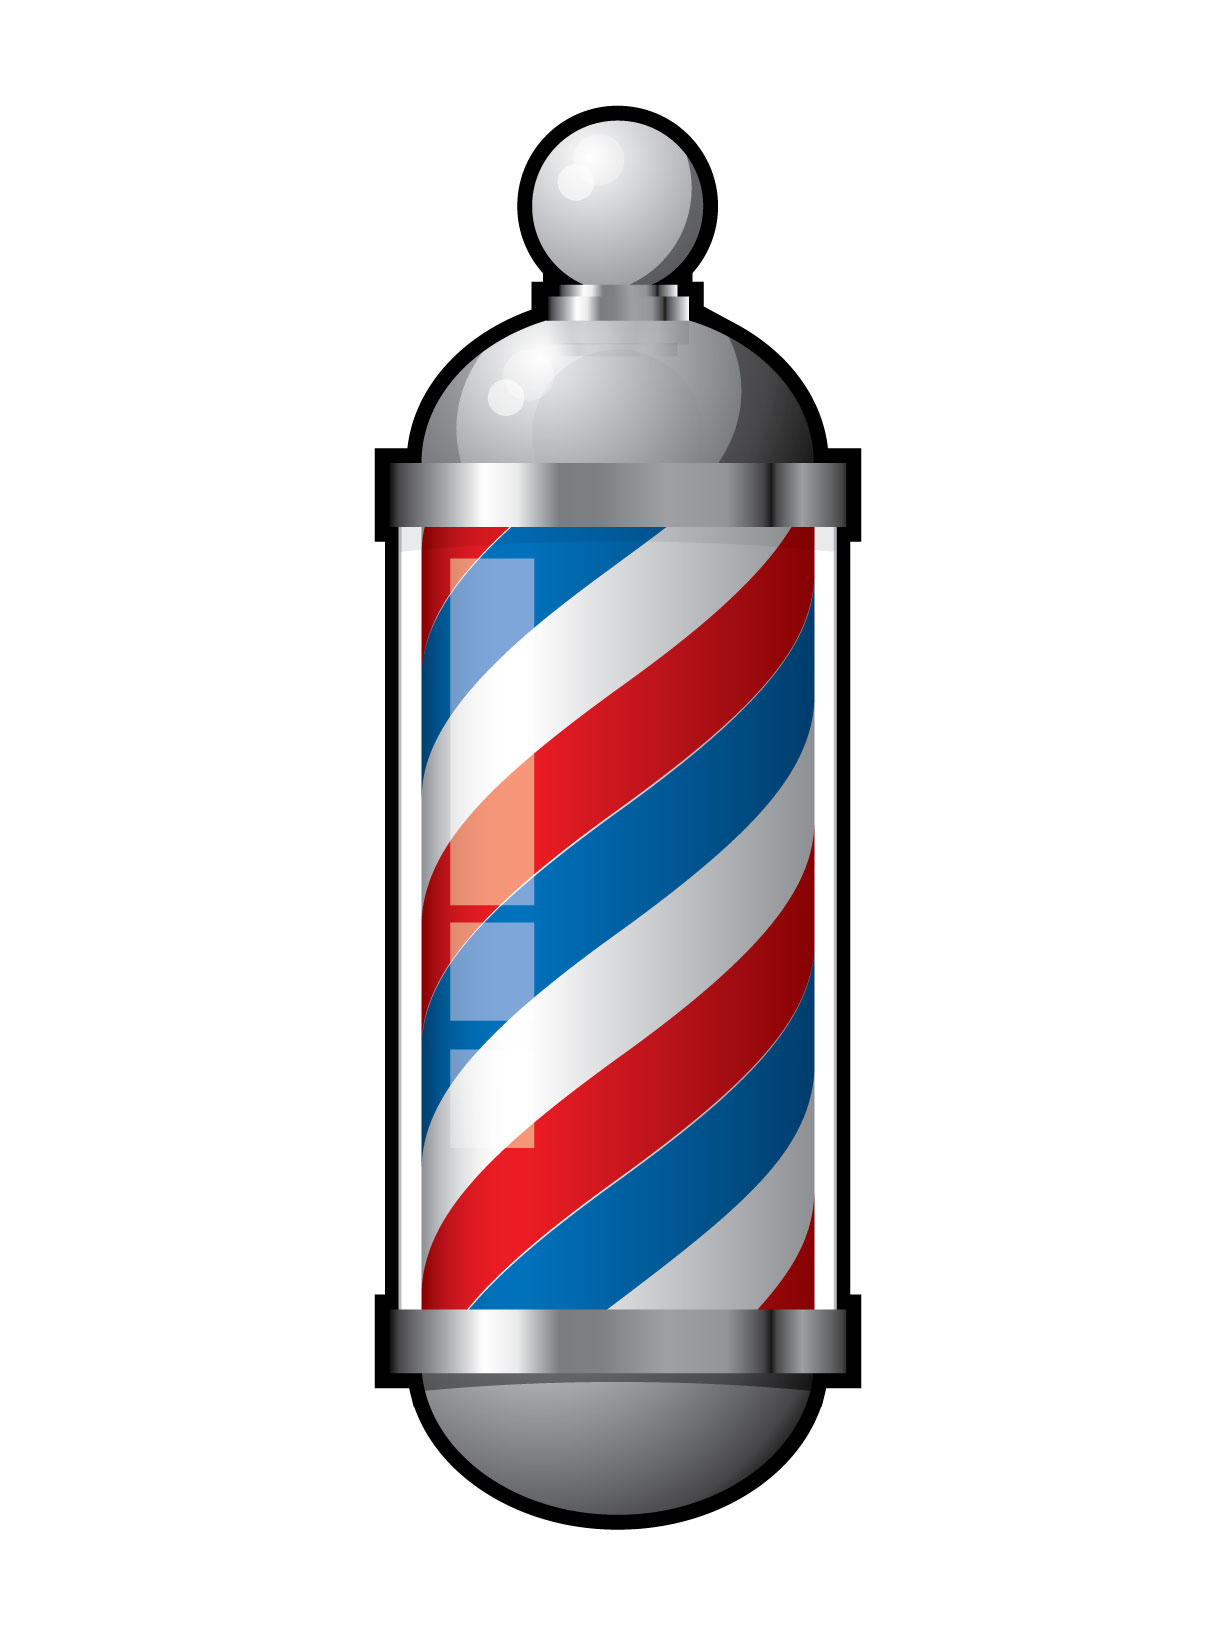 barber logos clipart best